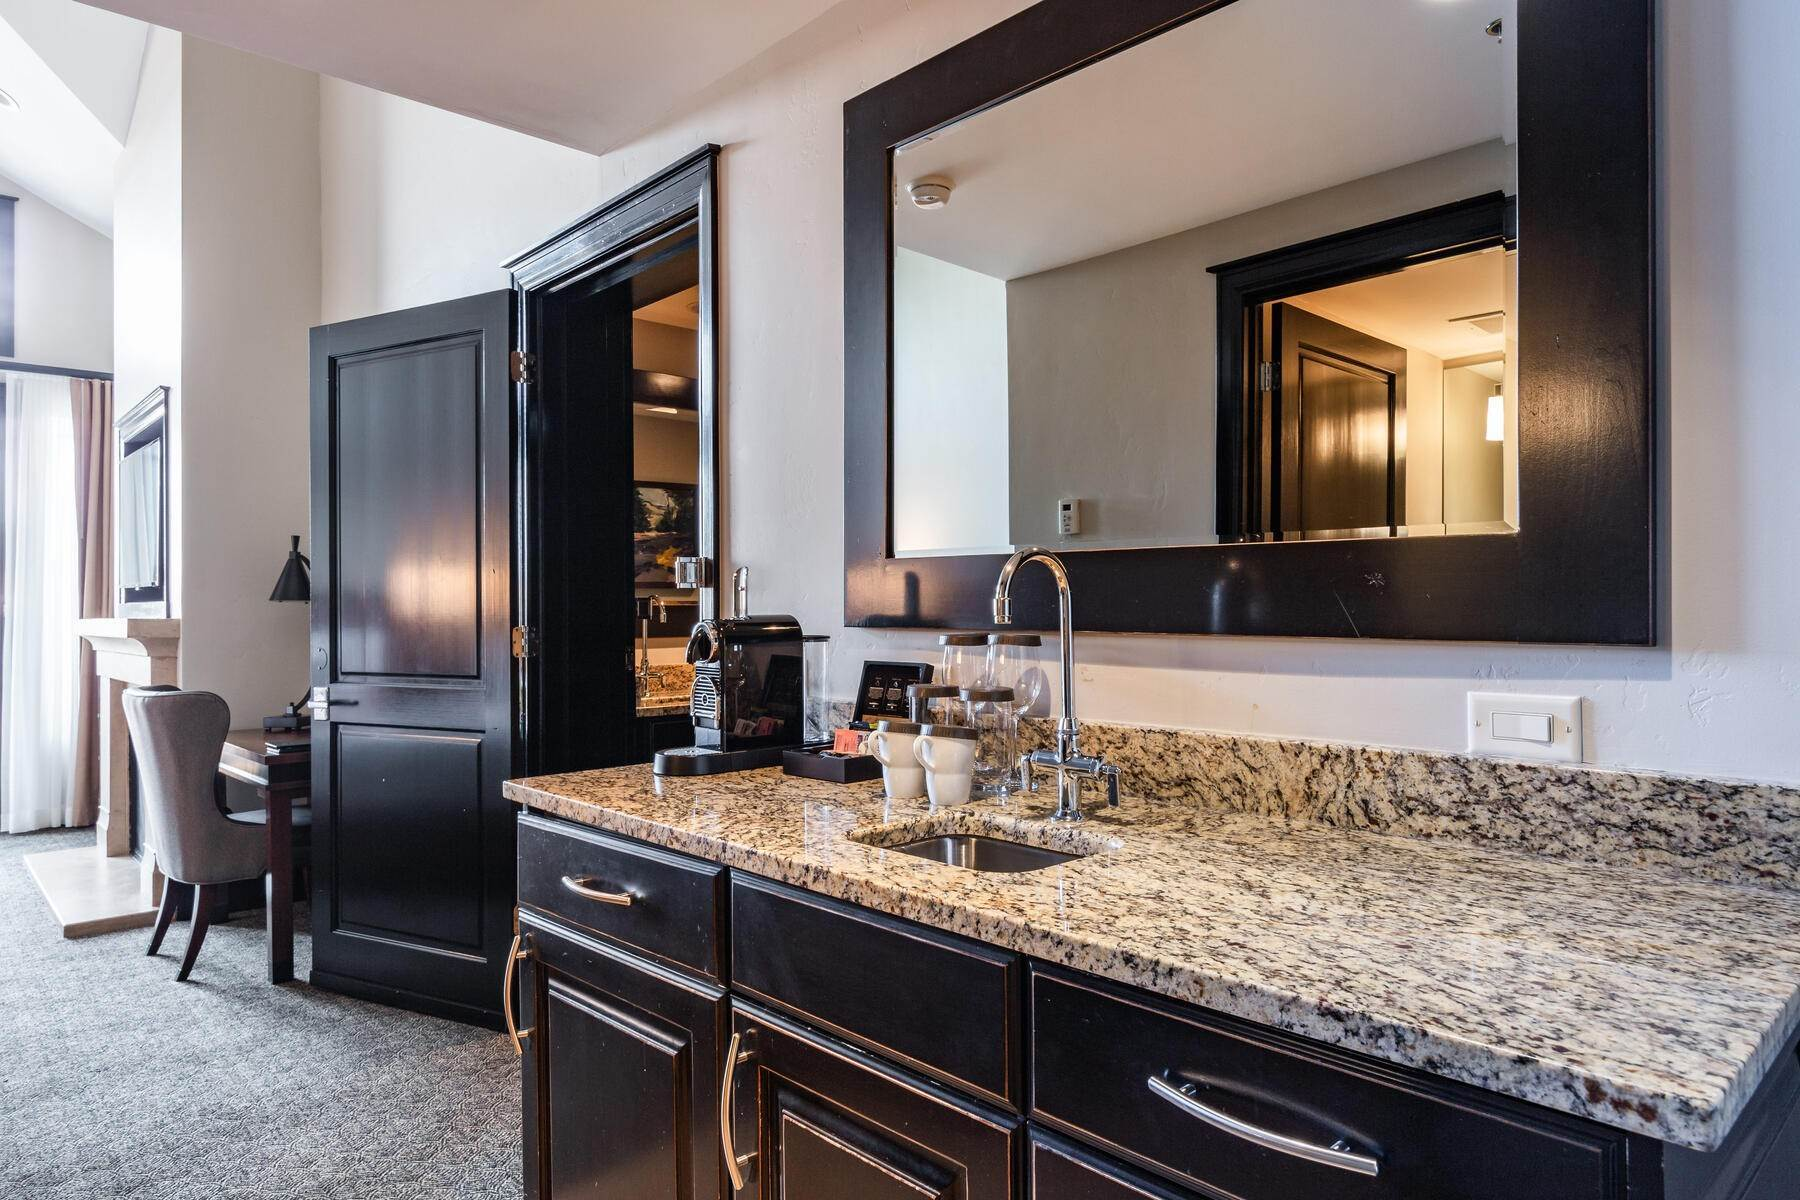 19. Condominiums for Sale at Only 4-Bedroom Available at Waldorf Astoria, Top Floor, Penthouse Unit 2100 W Frostwood Blvd, #7117 Park City, Utah 84098 United States